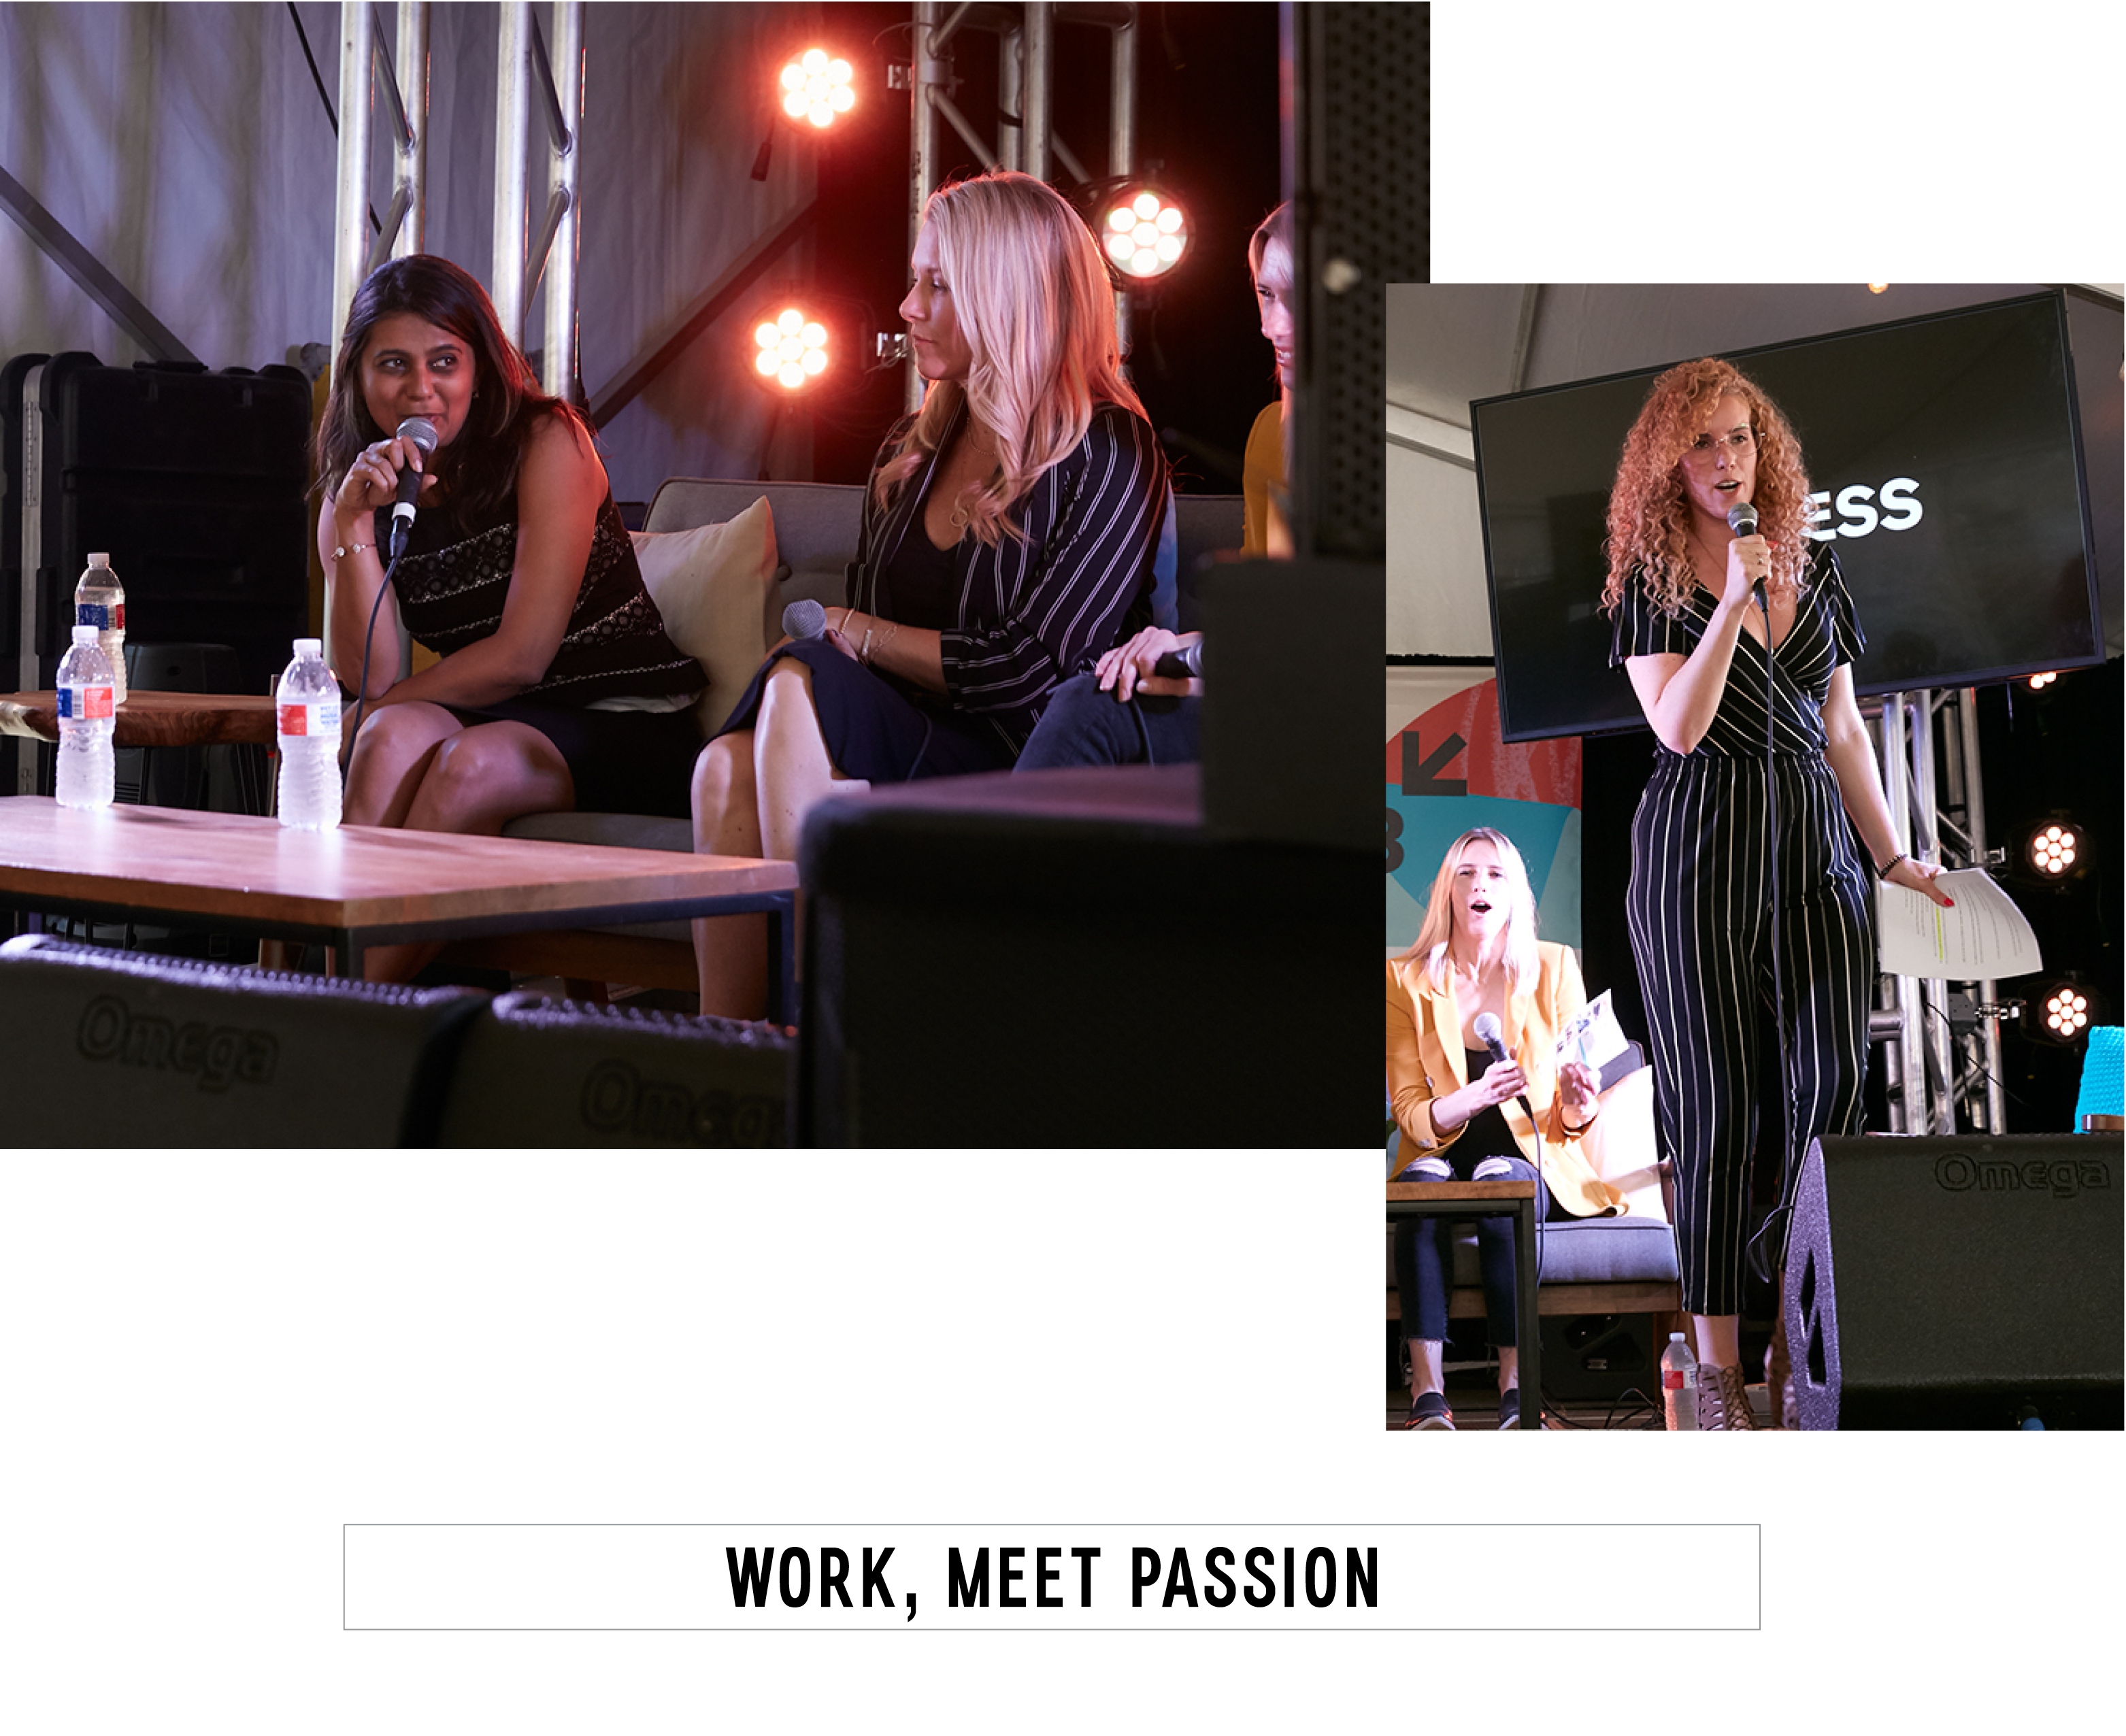 sxsw-panel-work-meet-passion